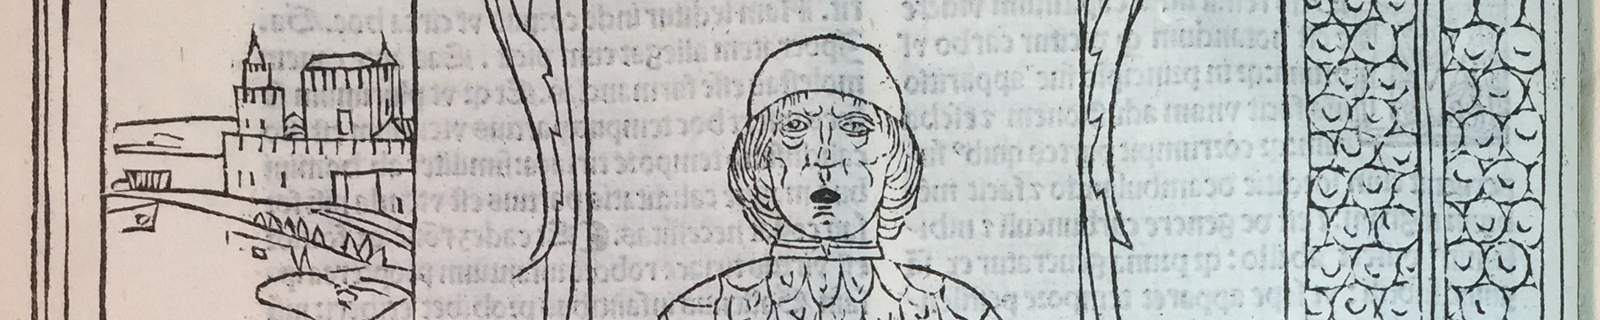 Lector from the Fasciculus Medicinae of Johannes Ketham, Pol Collection, 1491